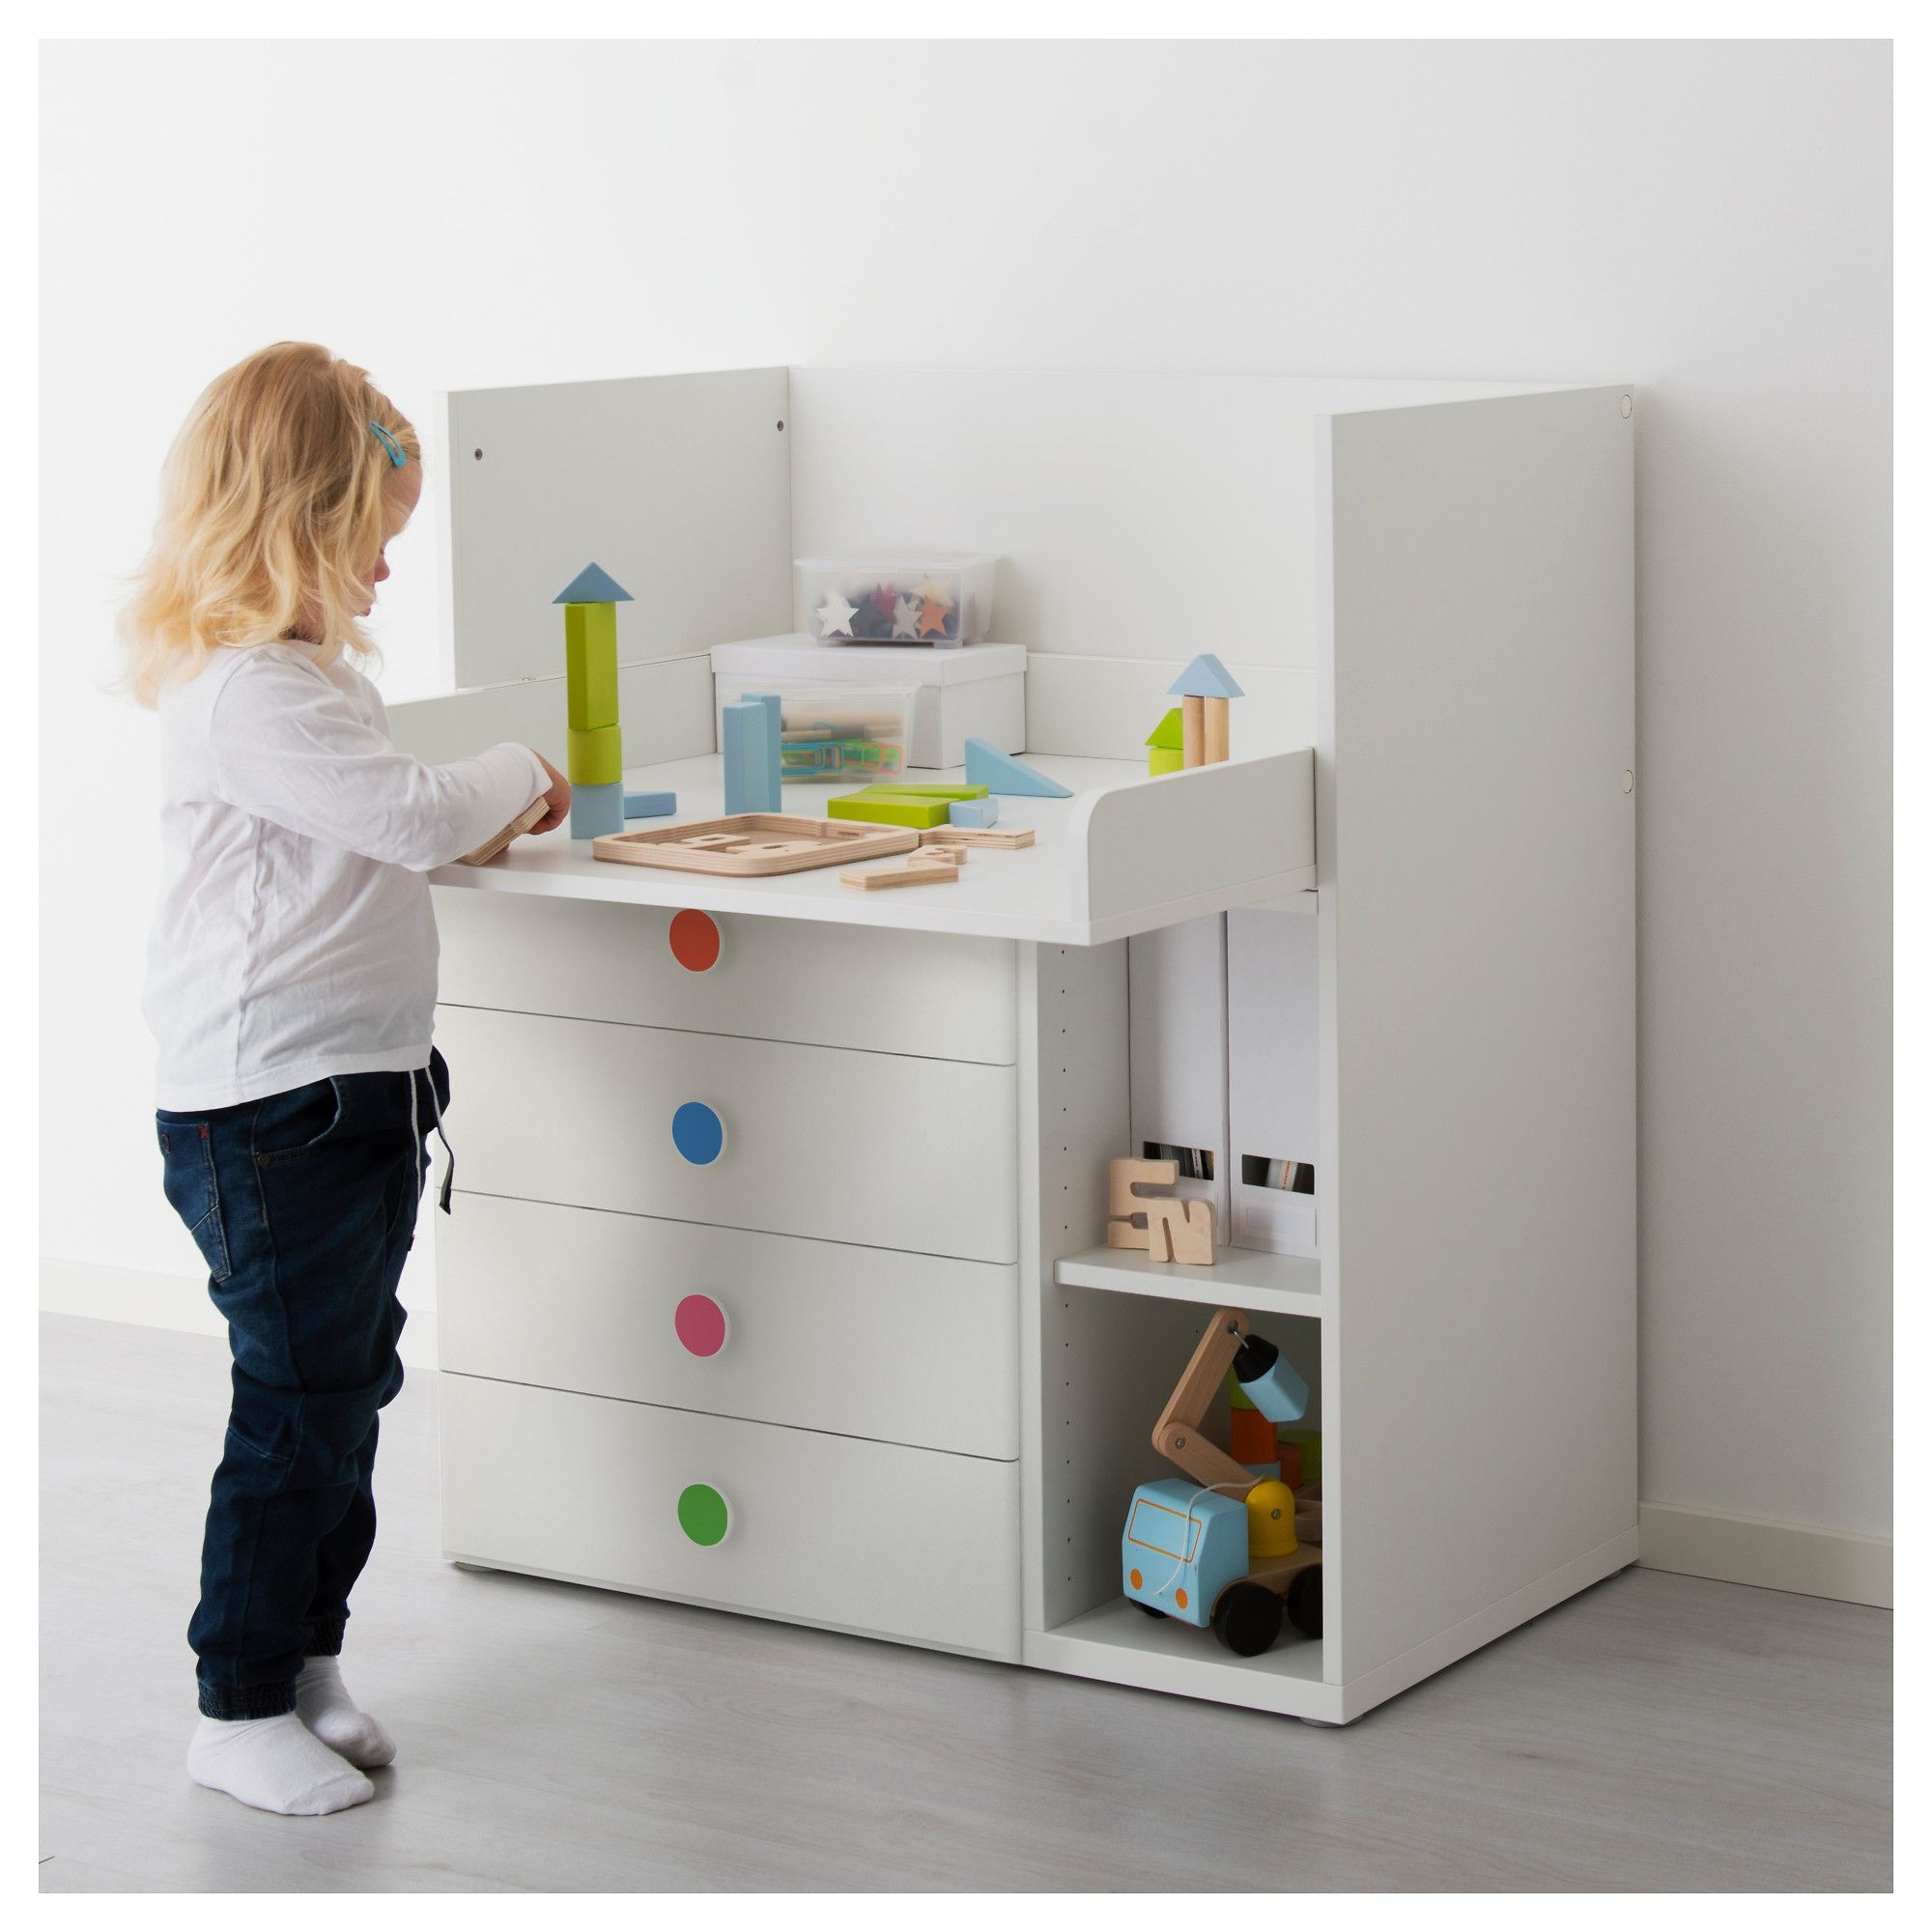 f5b0ef682972 IKEA - STUVA / FÖLJA Changing table with 4 drawers white in 2019 ...